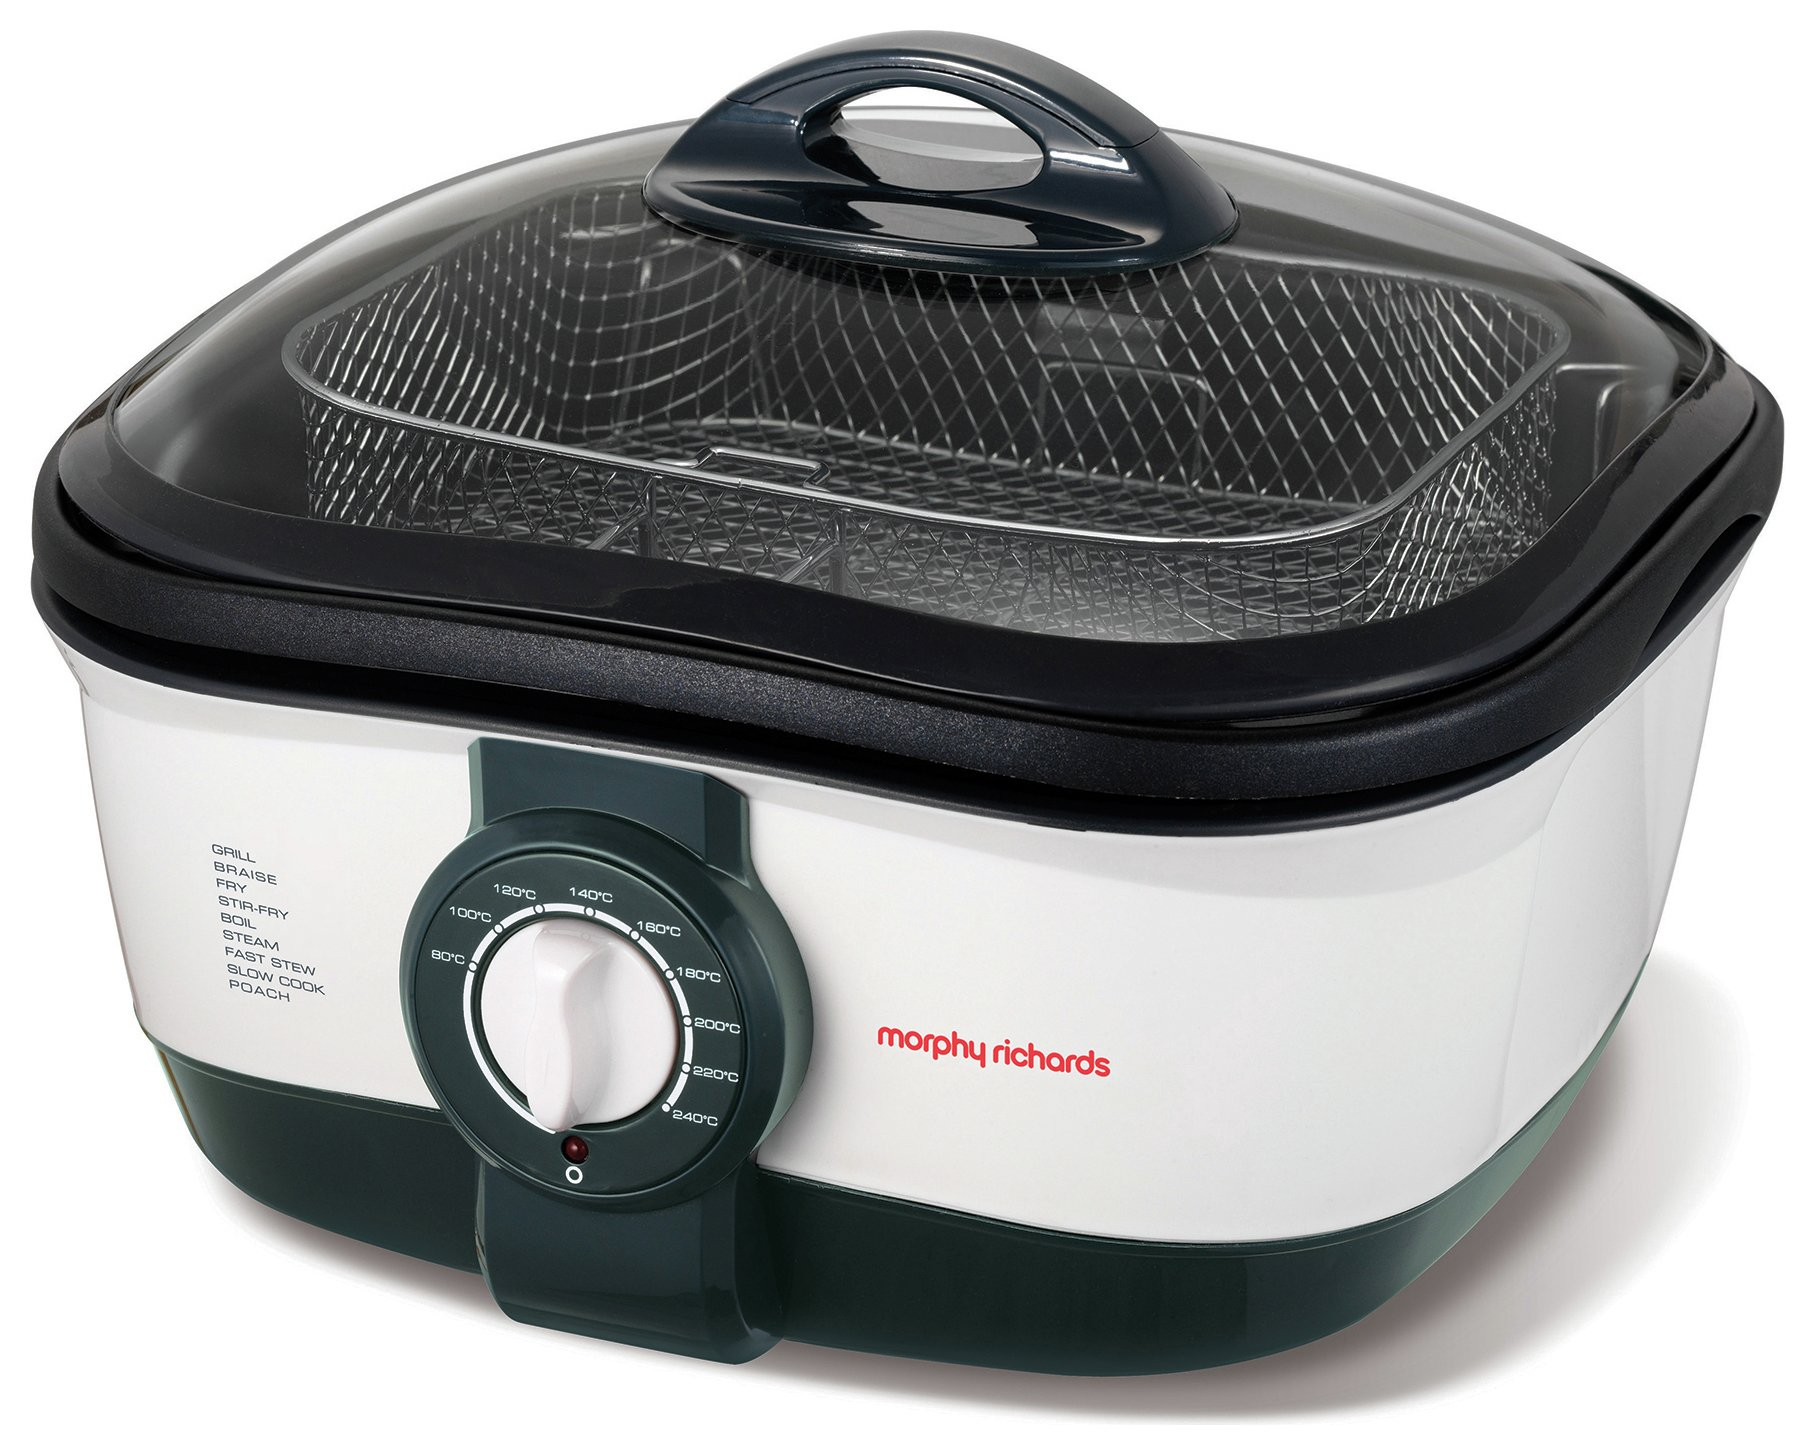 morphy richards 562020 intellichef 9 in 1 multicooker review. Black Bedroom Furniture Sets. Home Design Ideas